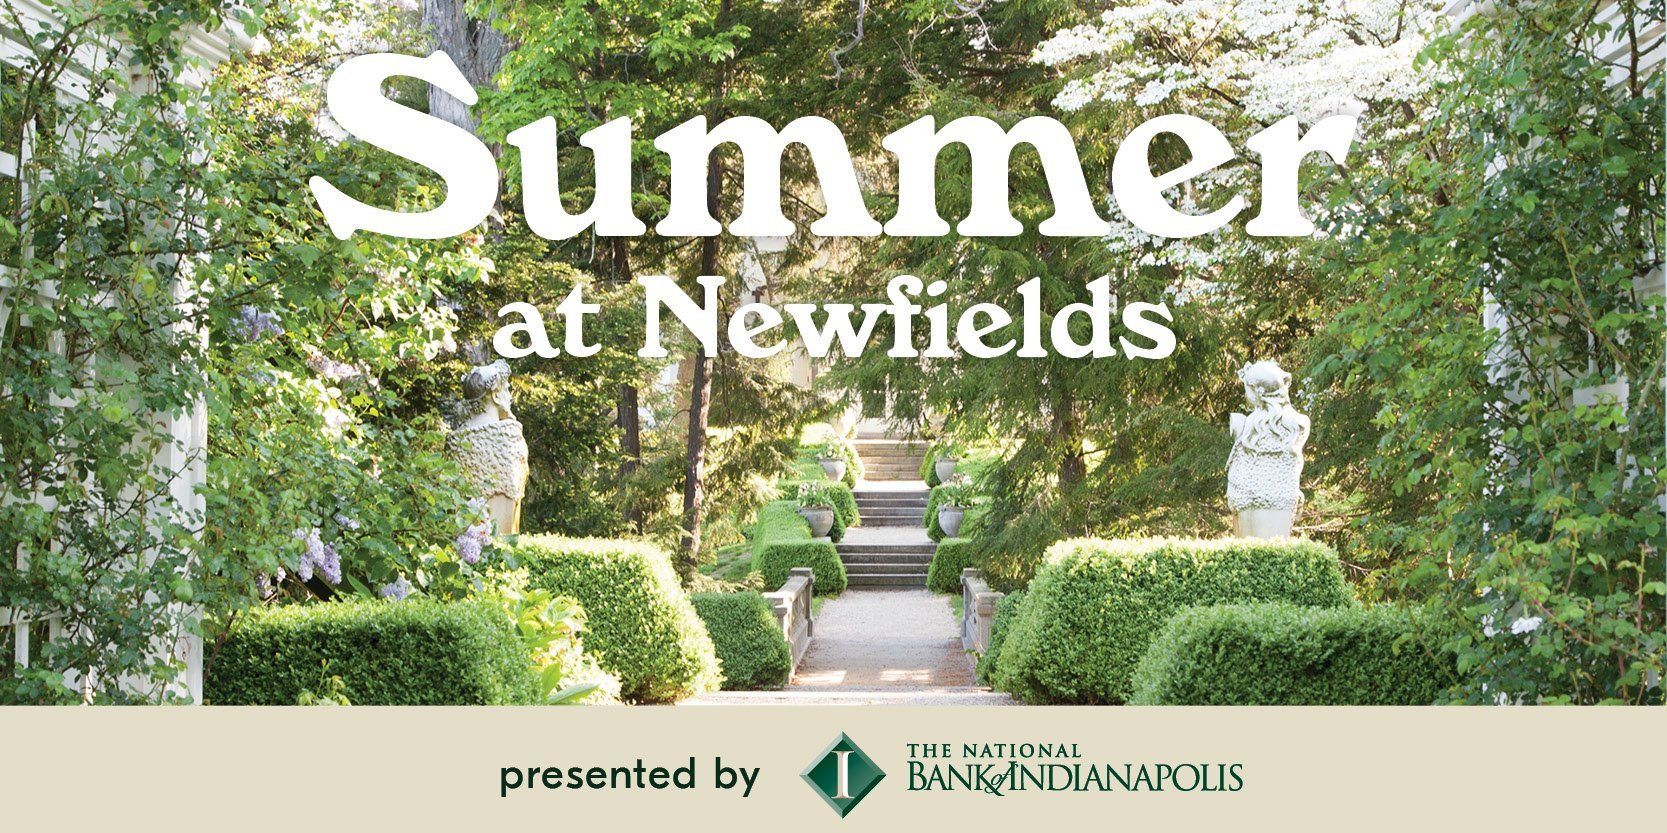 Newfields Summer sponsored by National Bank of Indianapolis